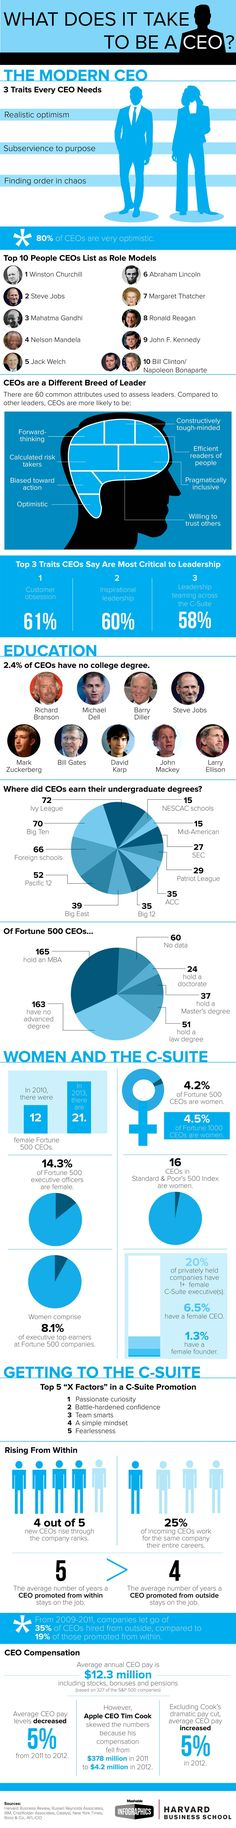 Some interesting findings: Women lag significantly behind men in the C-Suite (amounting to just 4.2% of Fortune 500 CEOs), 80% of CEOs descr...